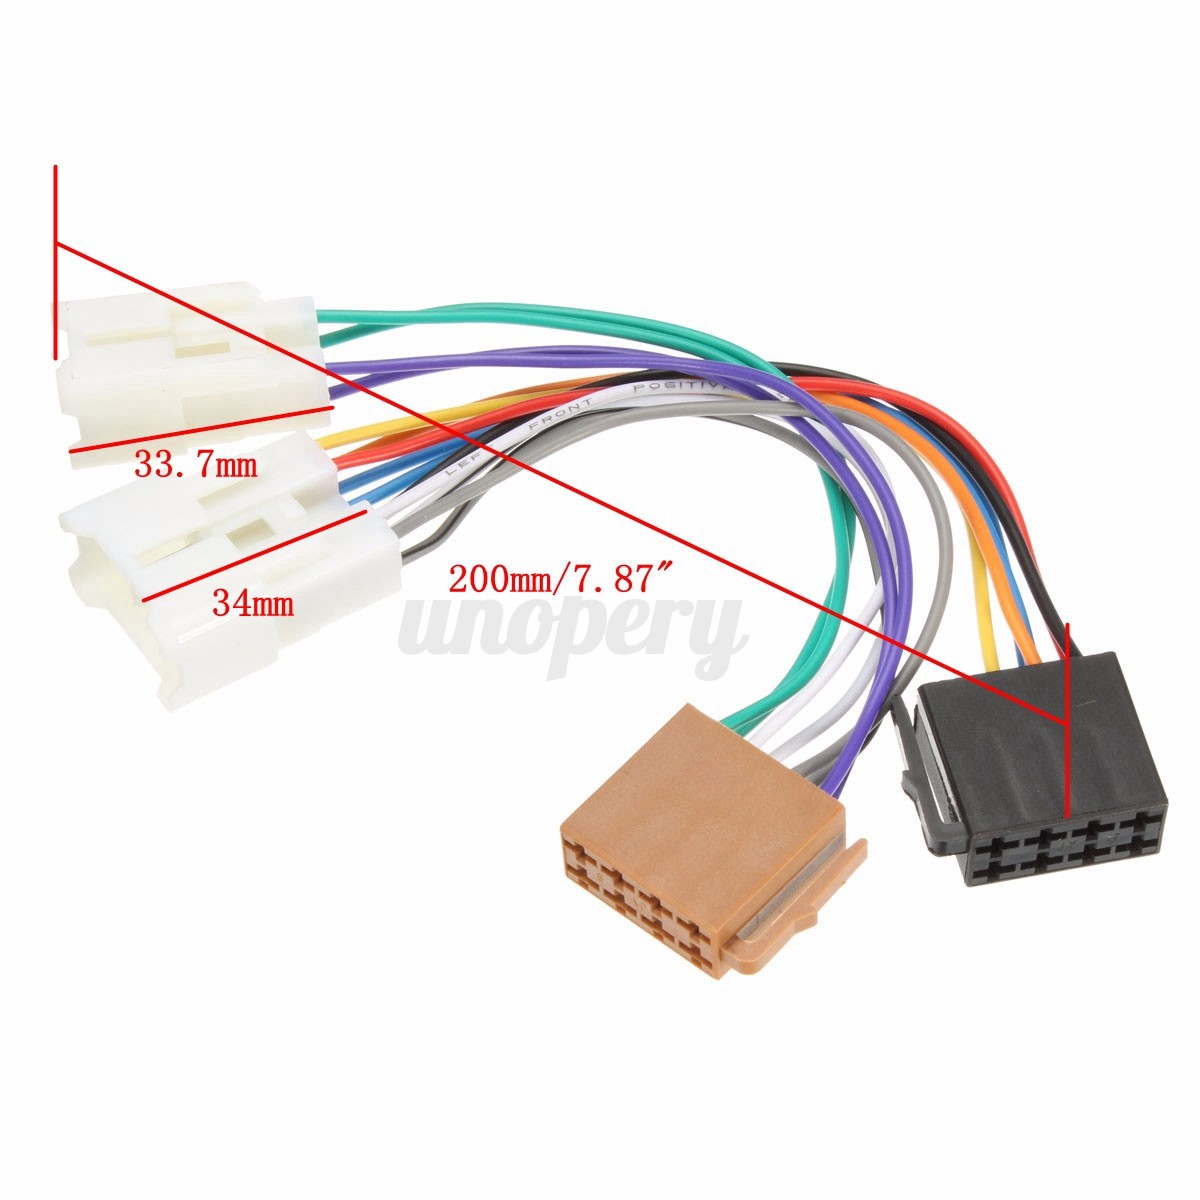 Toyota Corolla Radio Wiring Harness Adapter Auto Iso Car Stereo Connector For